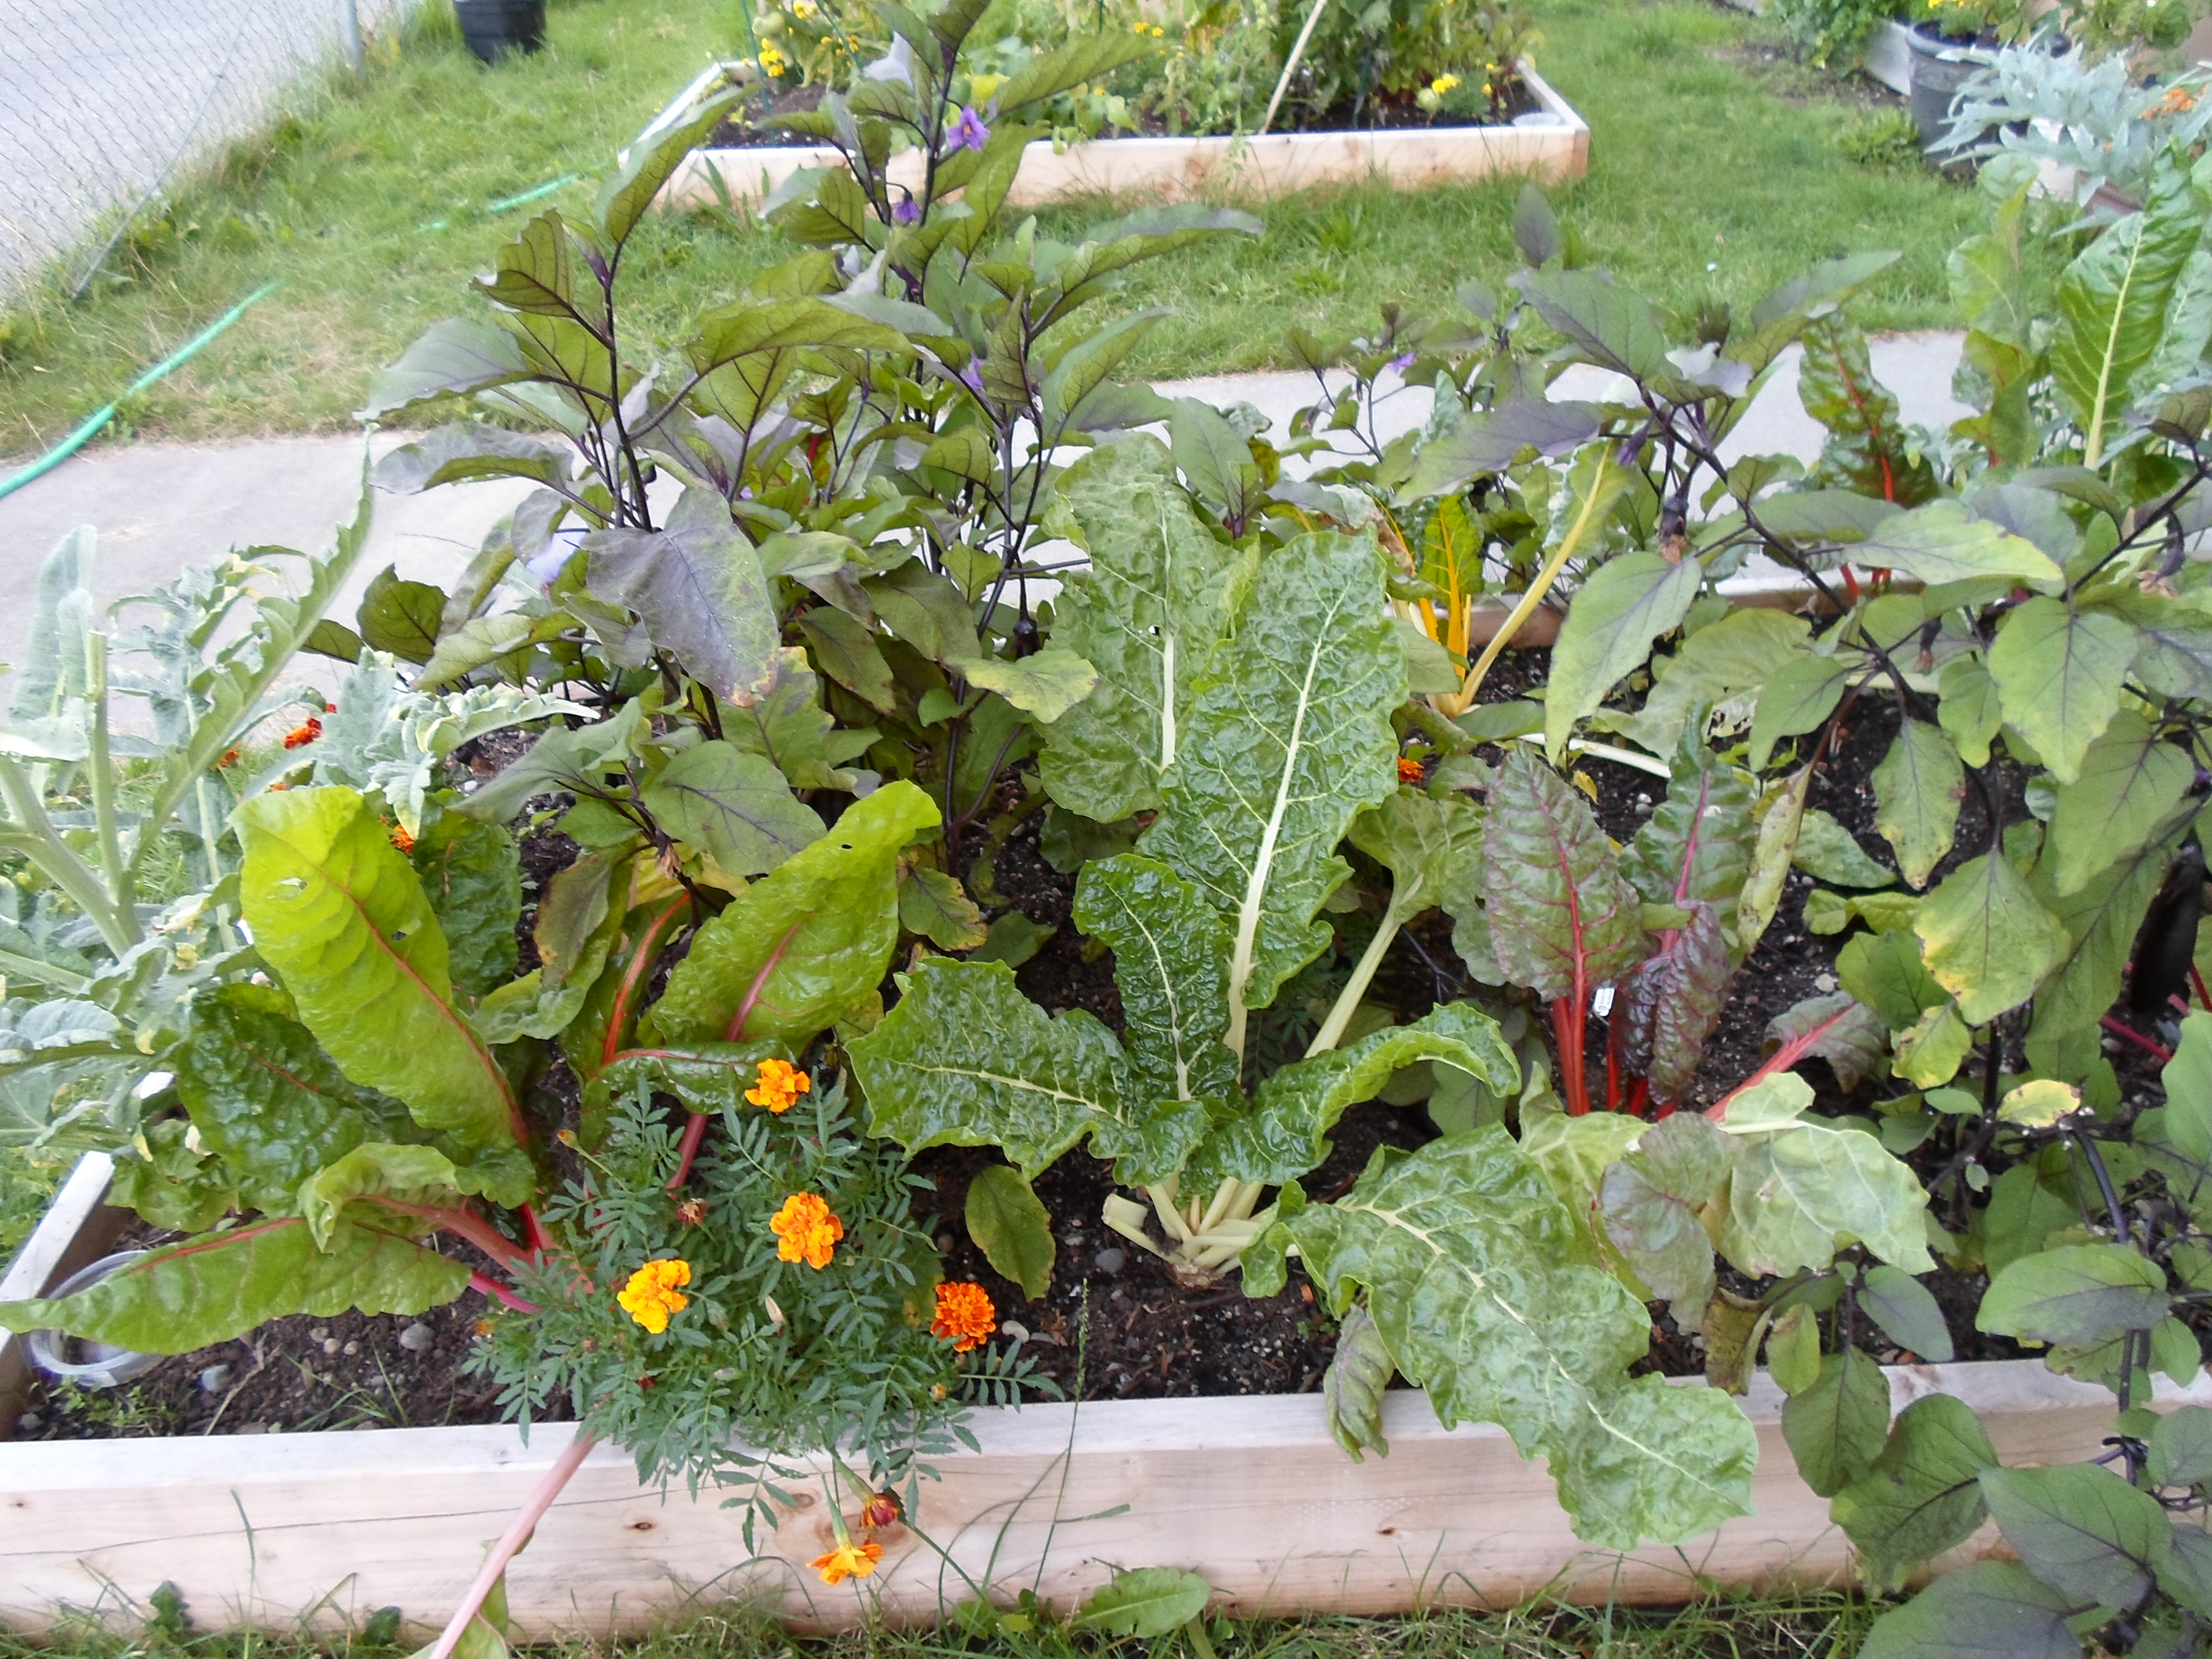 I Am Starting A Program For Vocational Training Working In Organic Gardening.  I Currently Have A Small Plot Of Land In The University District Of Seattle  ...